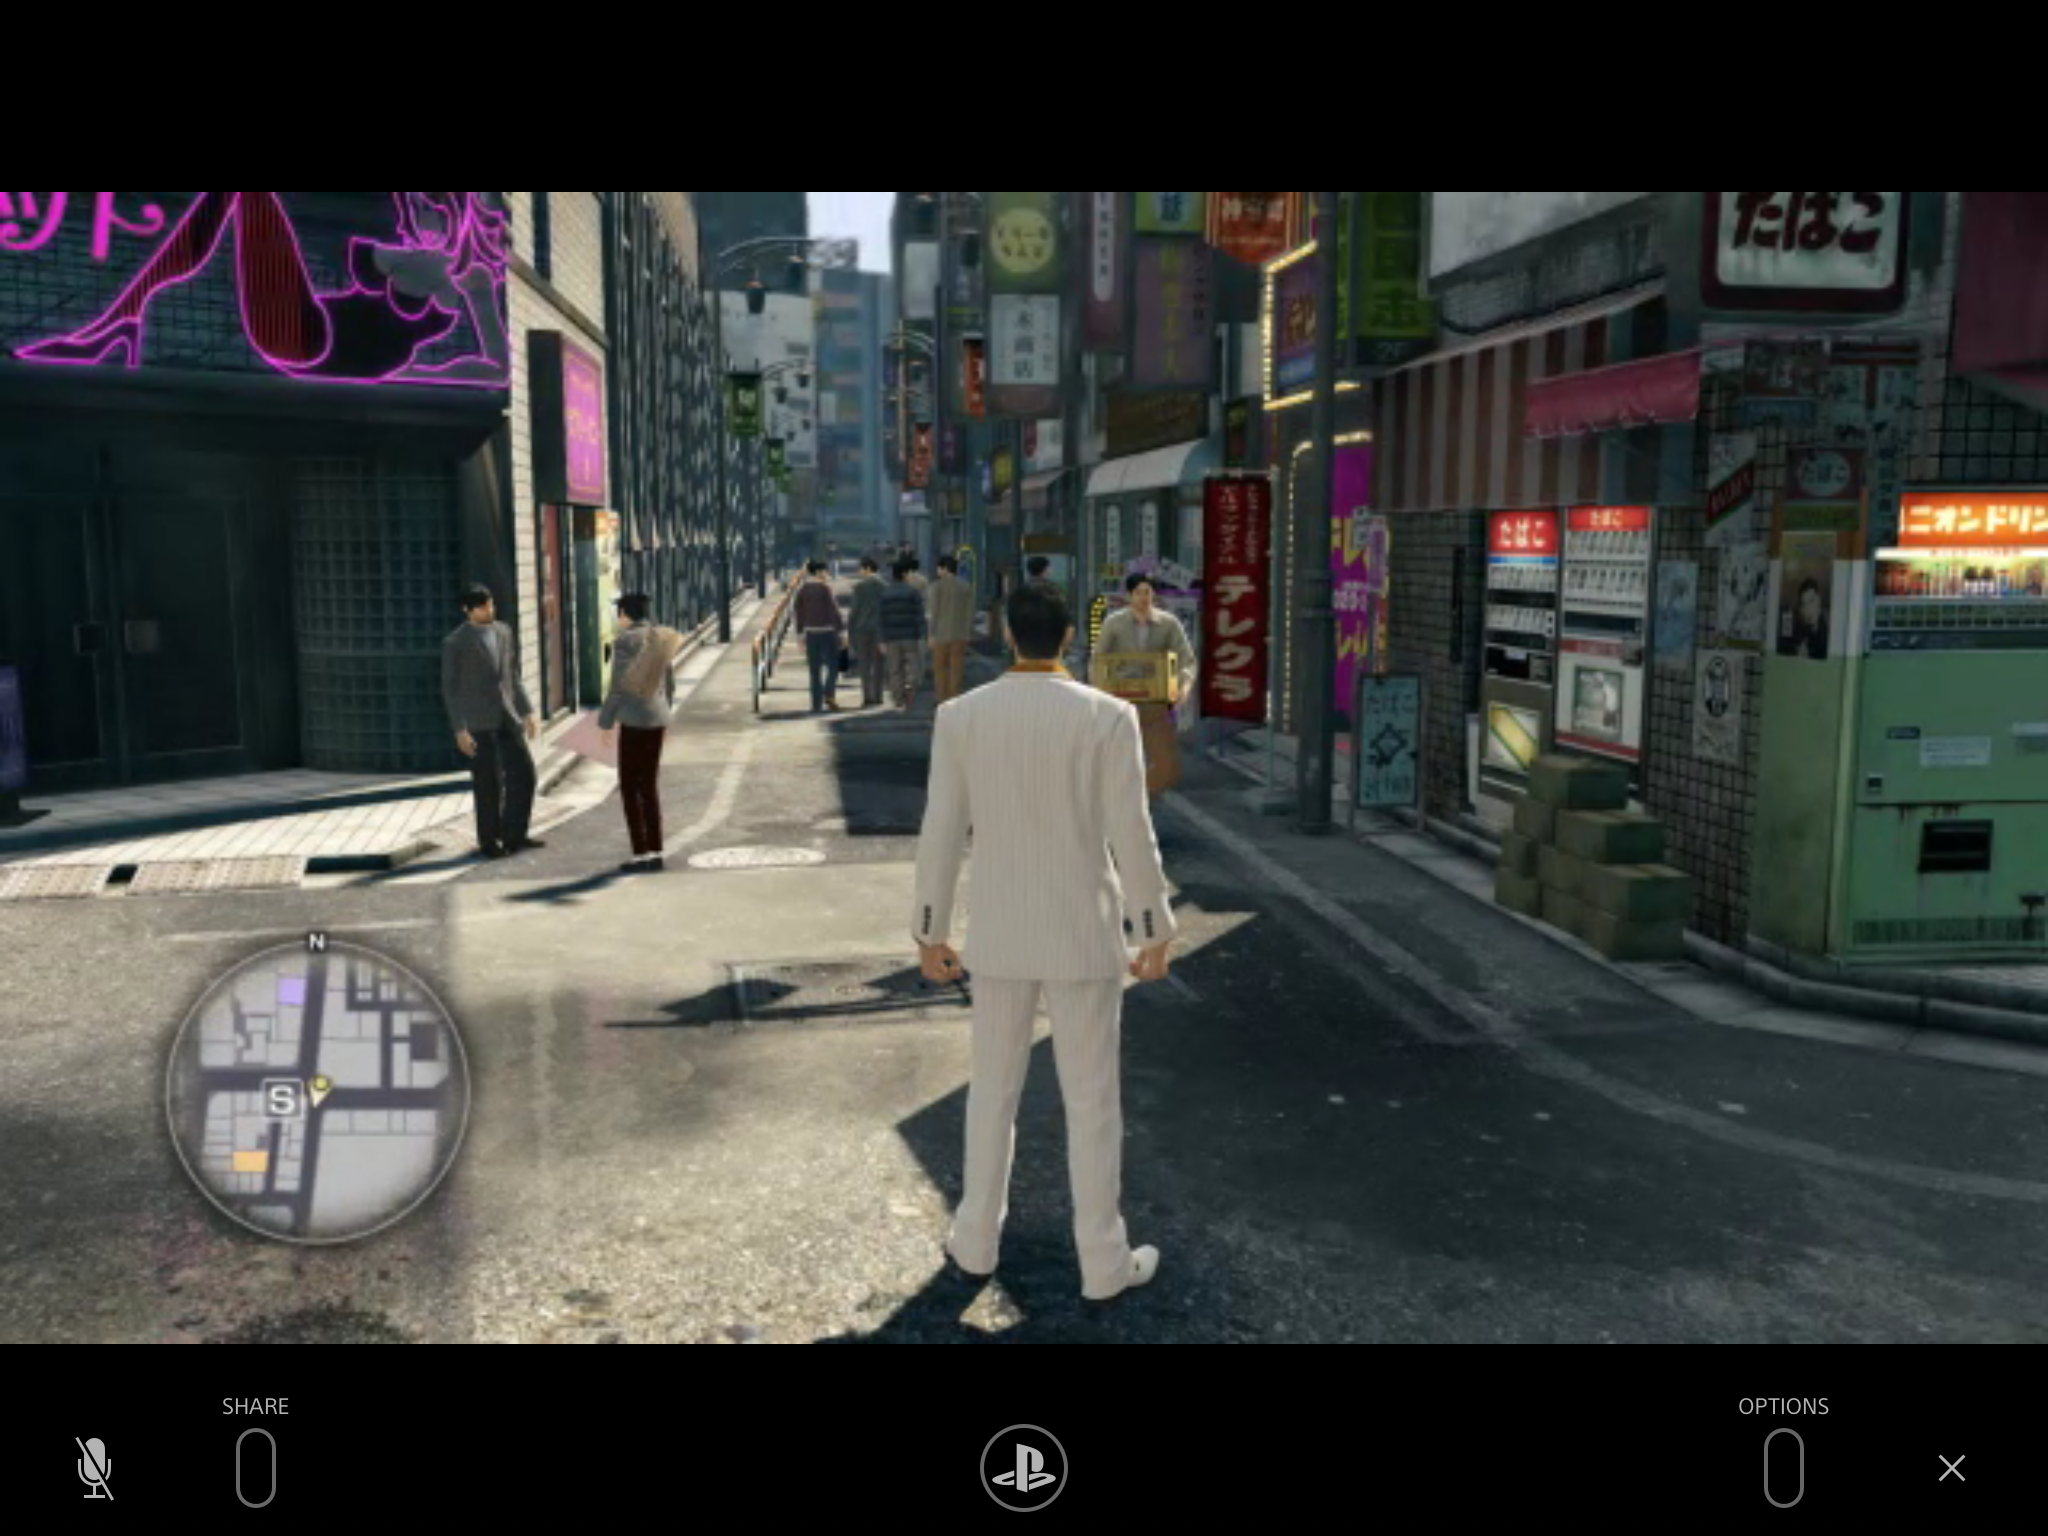 Sony Releases Official 'PS4 Remote Play' App for iOS Devices Letting